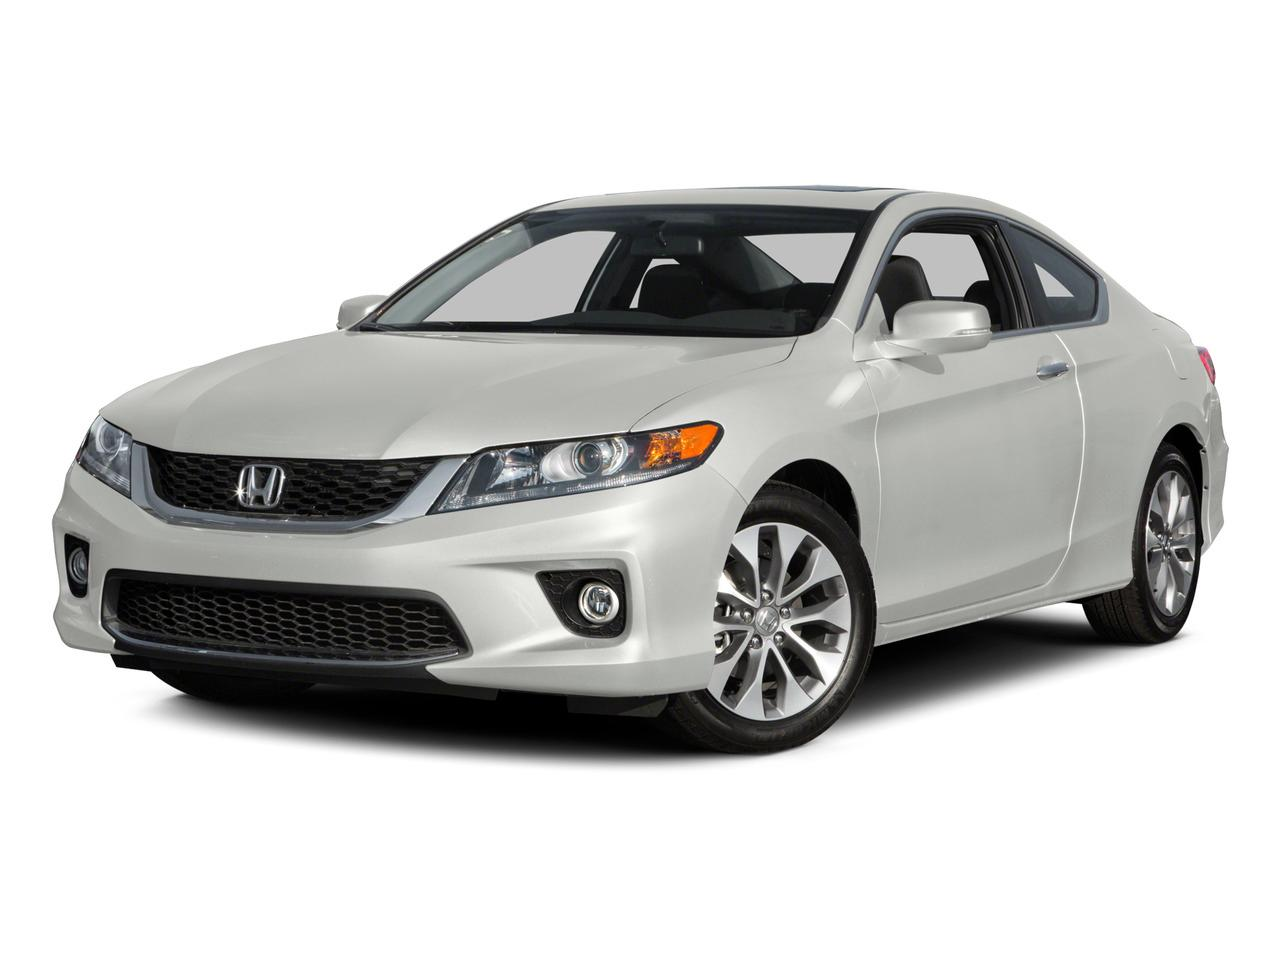 2015 Honda Accord Coupe Vehicle Photo in Anchorage, AK 99515